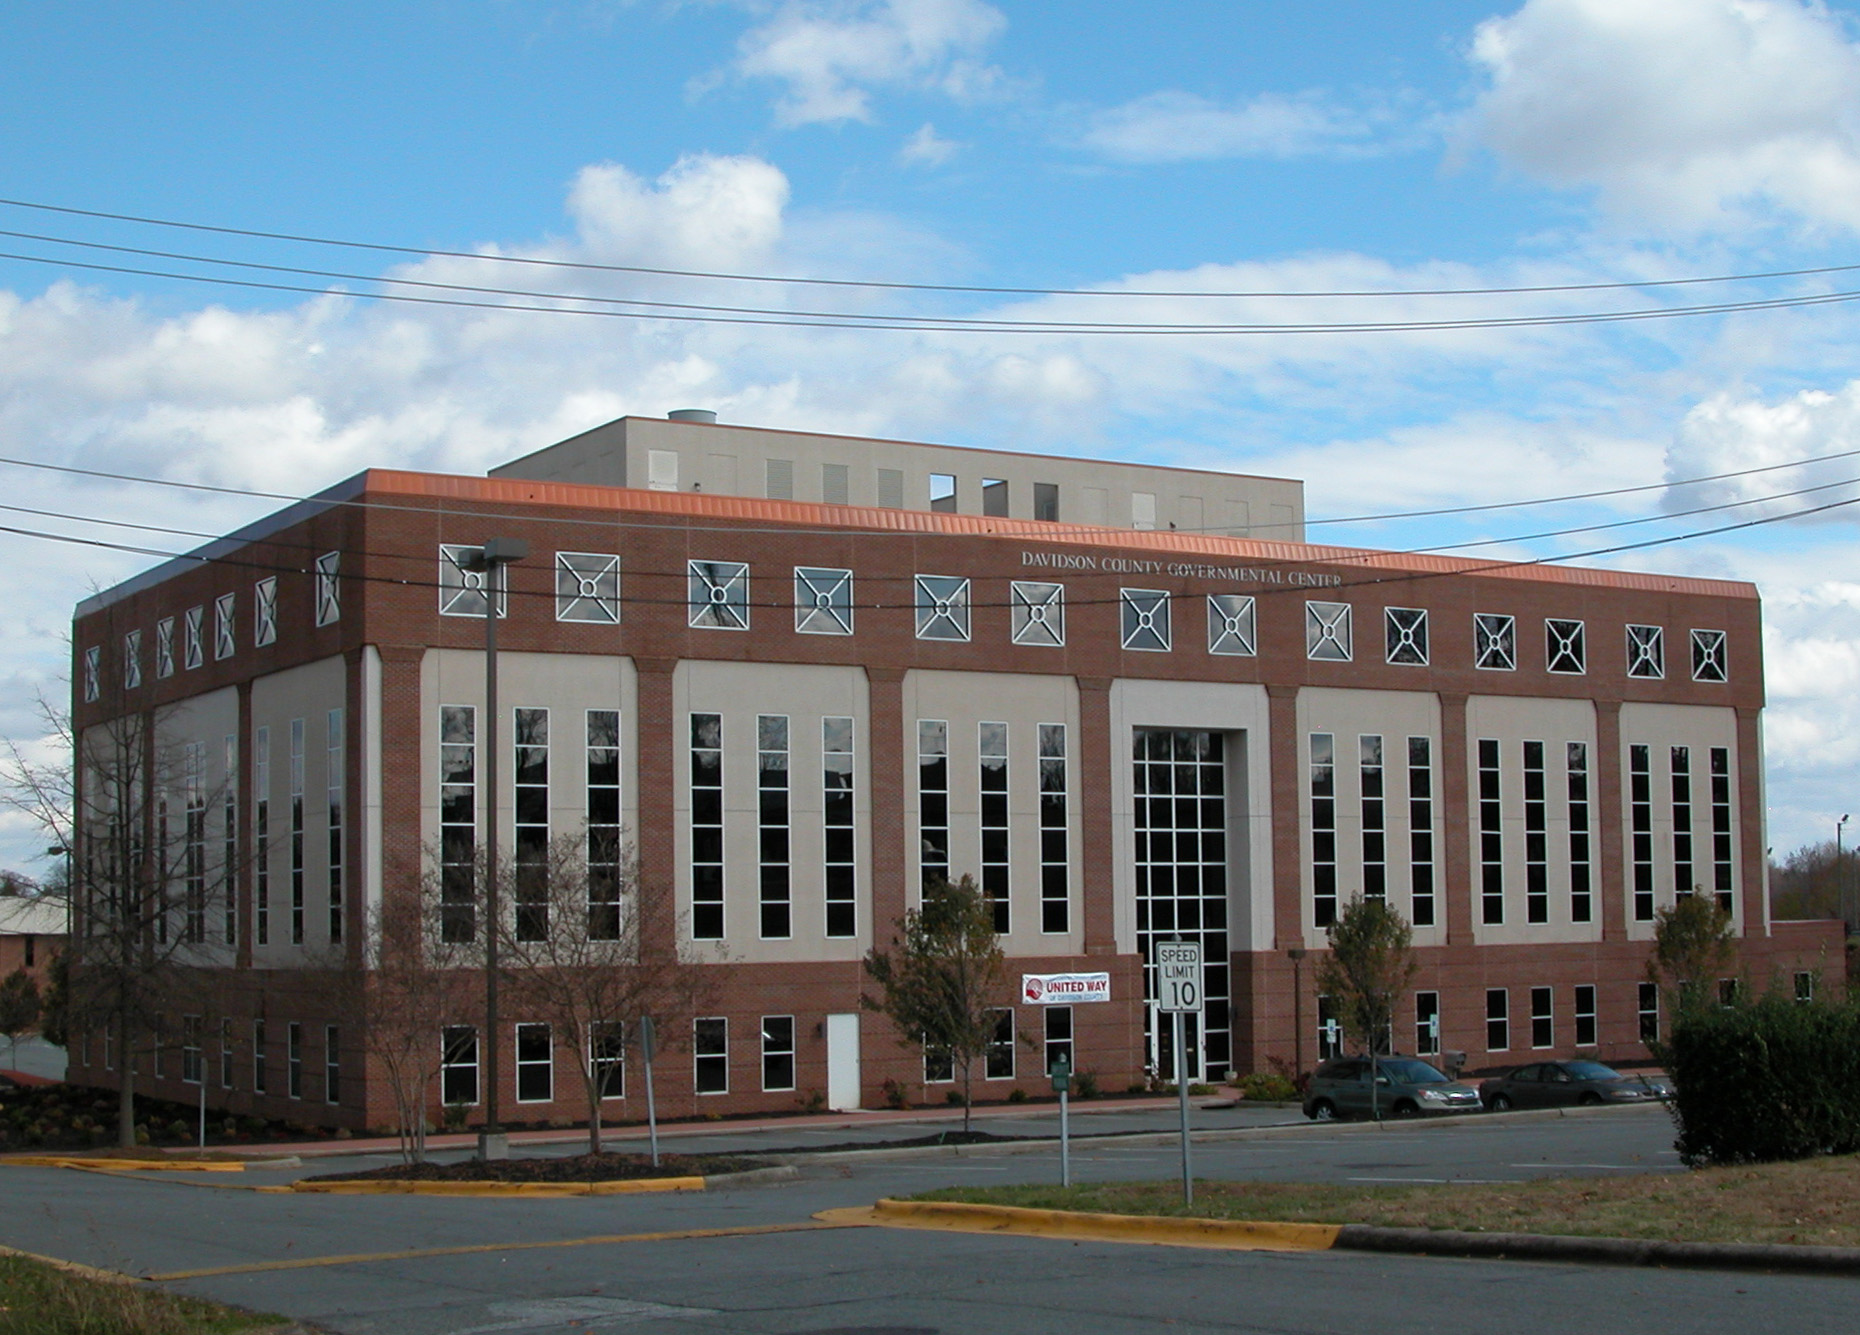 Davidson County Government Center